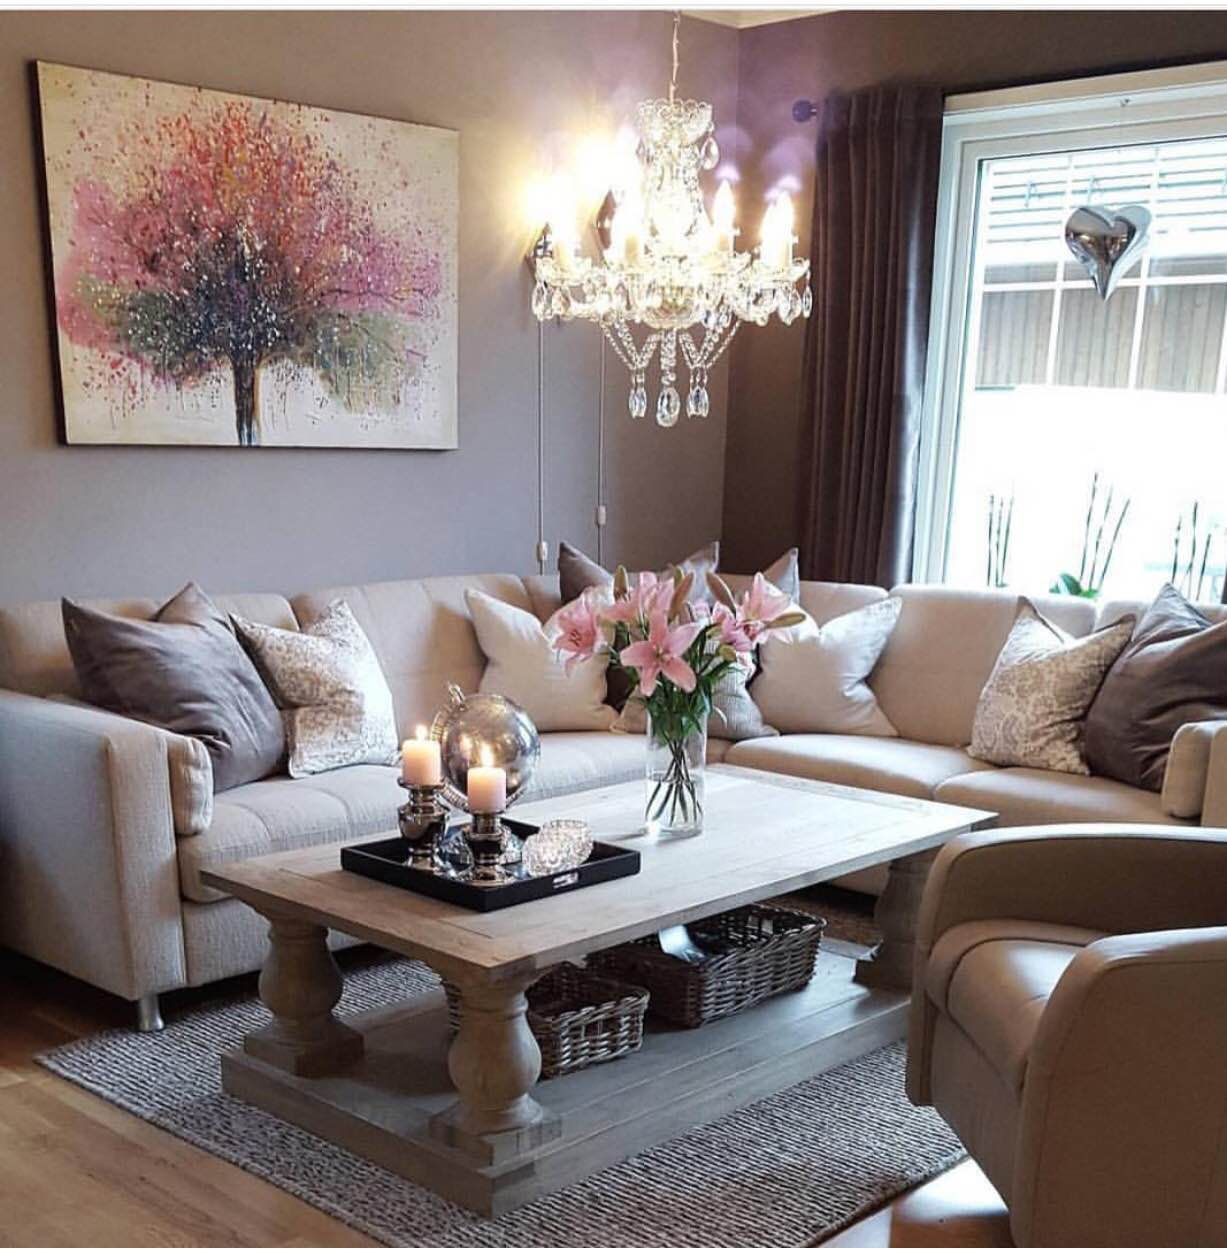 Nursery Ideas And Décor To Inspire You: The Inspiration You Need: Interview With Farah Merhi Of